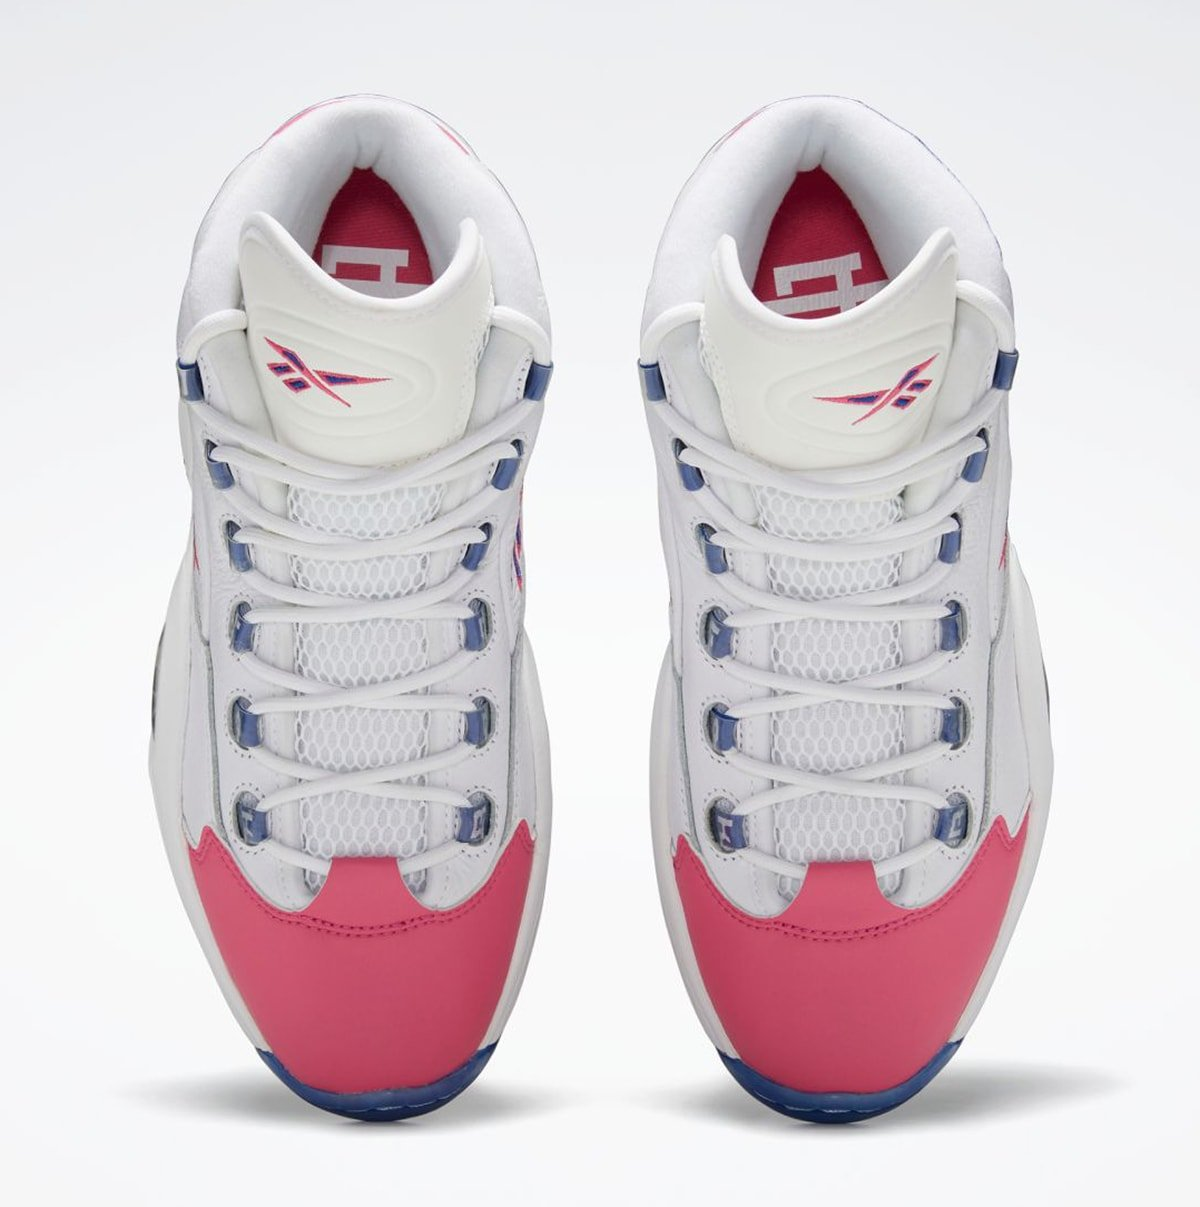 Eric Emanuel Reebok Question Mid Pink Toe FX7441 Release Date